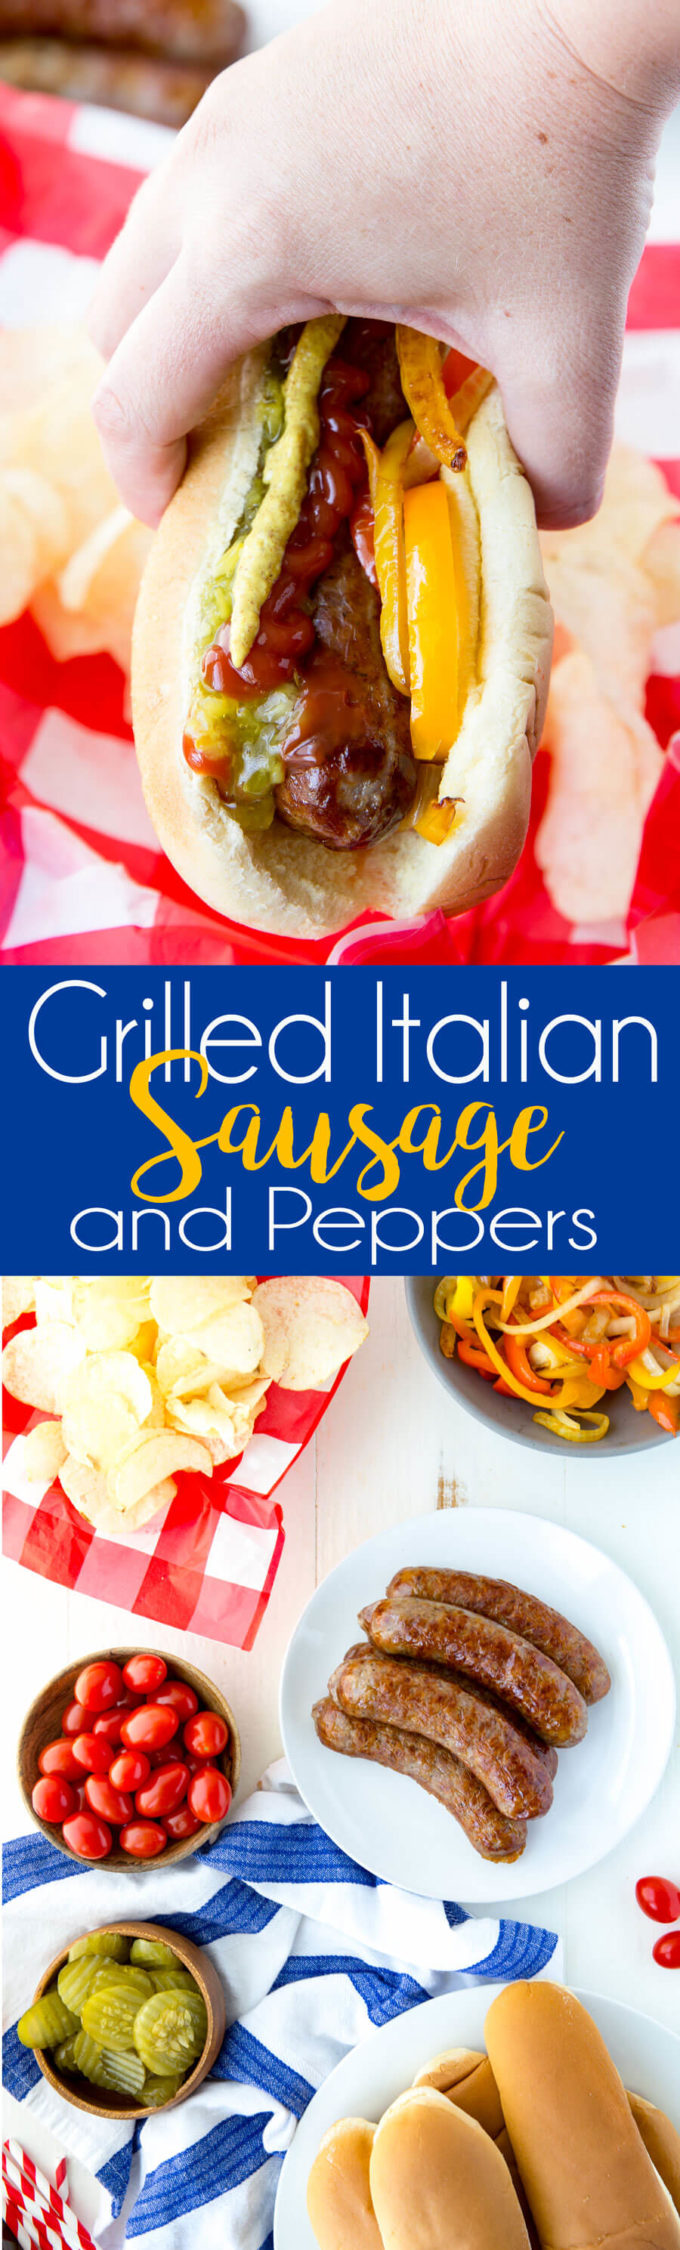 Grilled sausage and peppers and onions